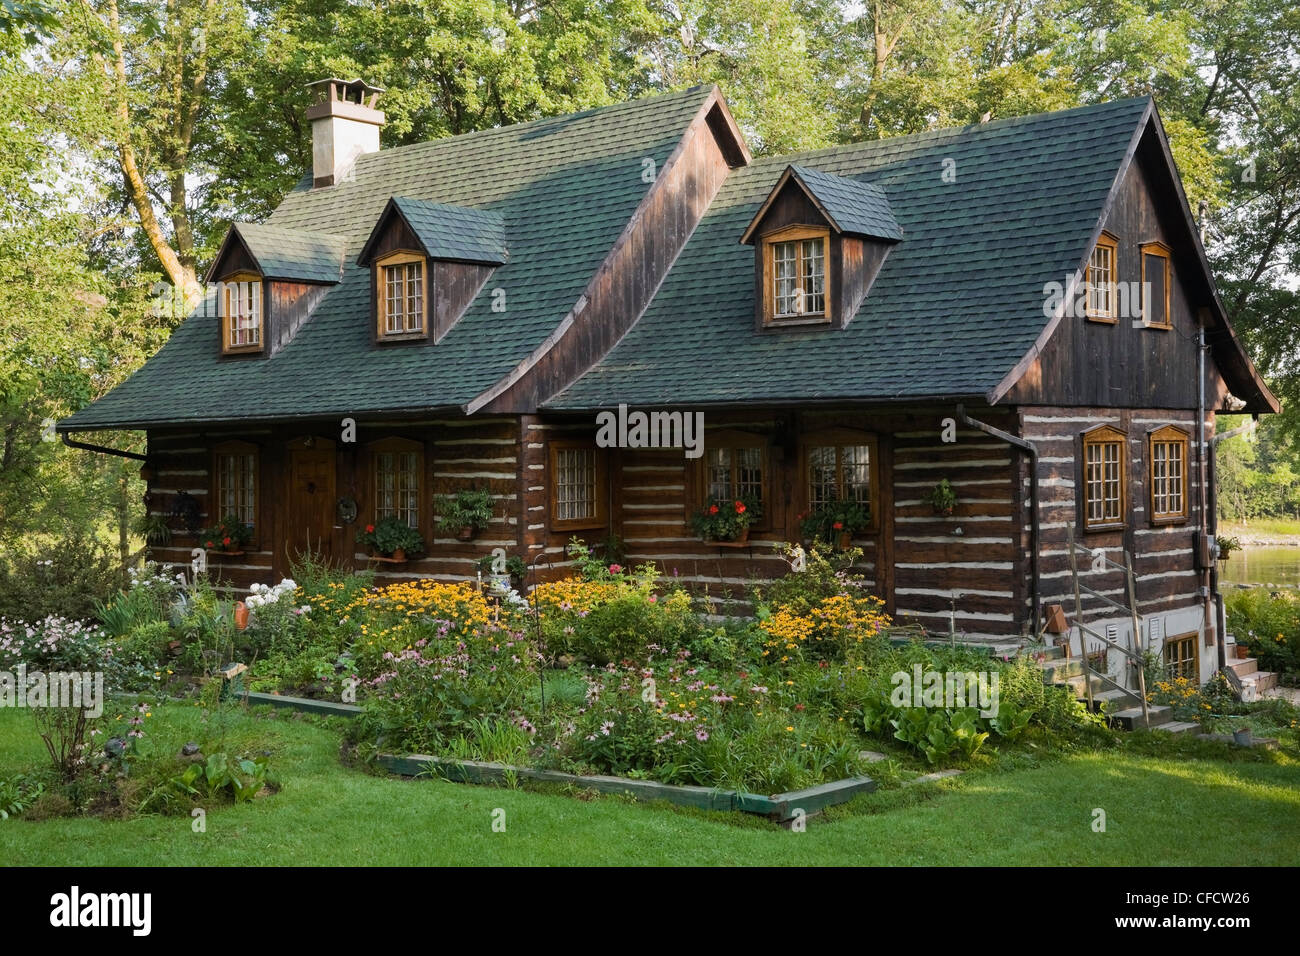 Reconstructed Old Canadiana (1977 replica) cottage style Residential Log Home, Quebec, Canada. - Stock Image